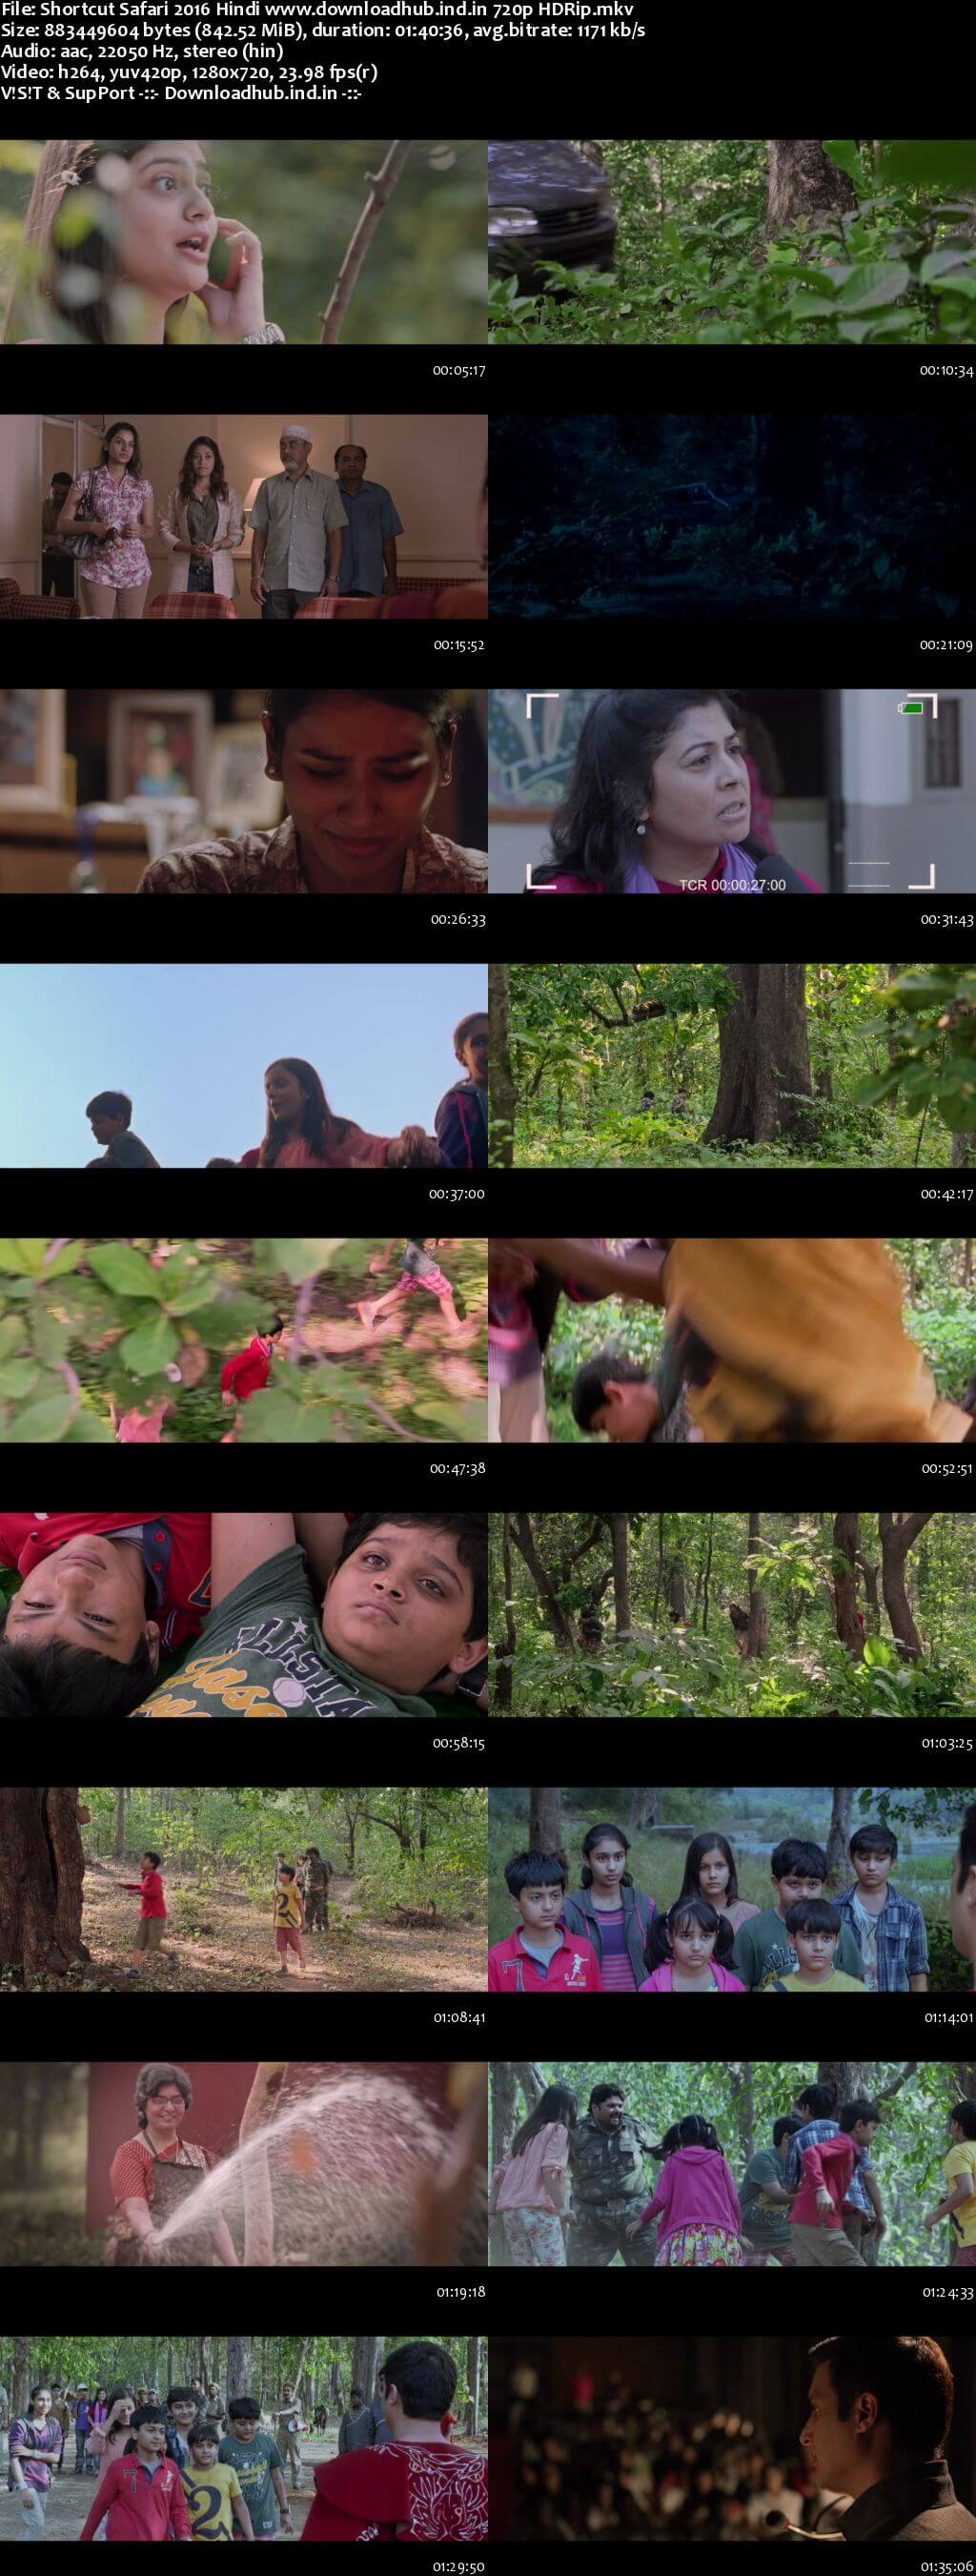 Shortcut Safari 2016 Hindi 720p HDRip x264